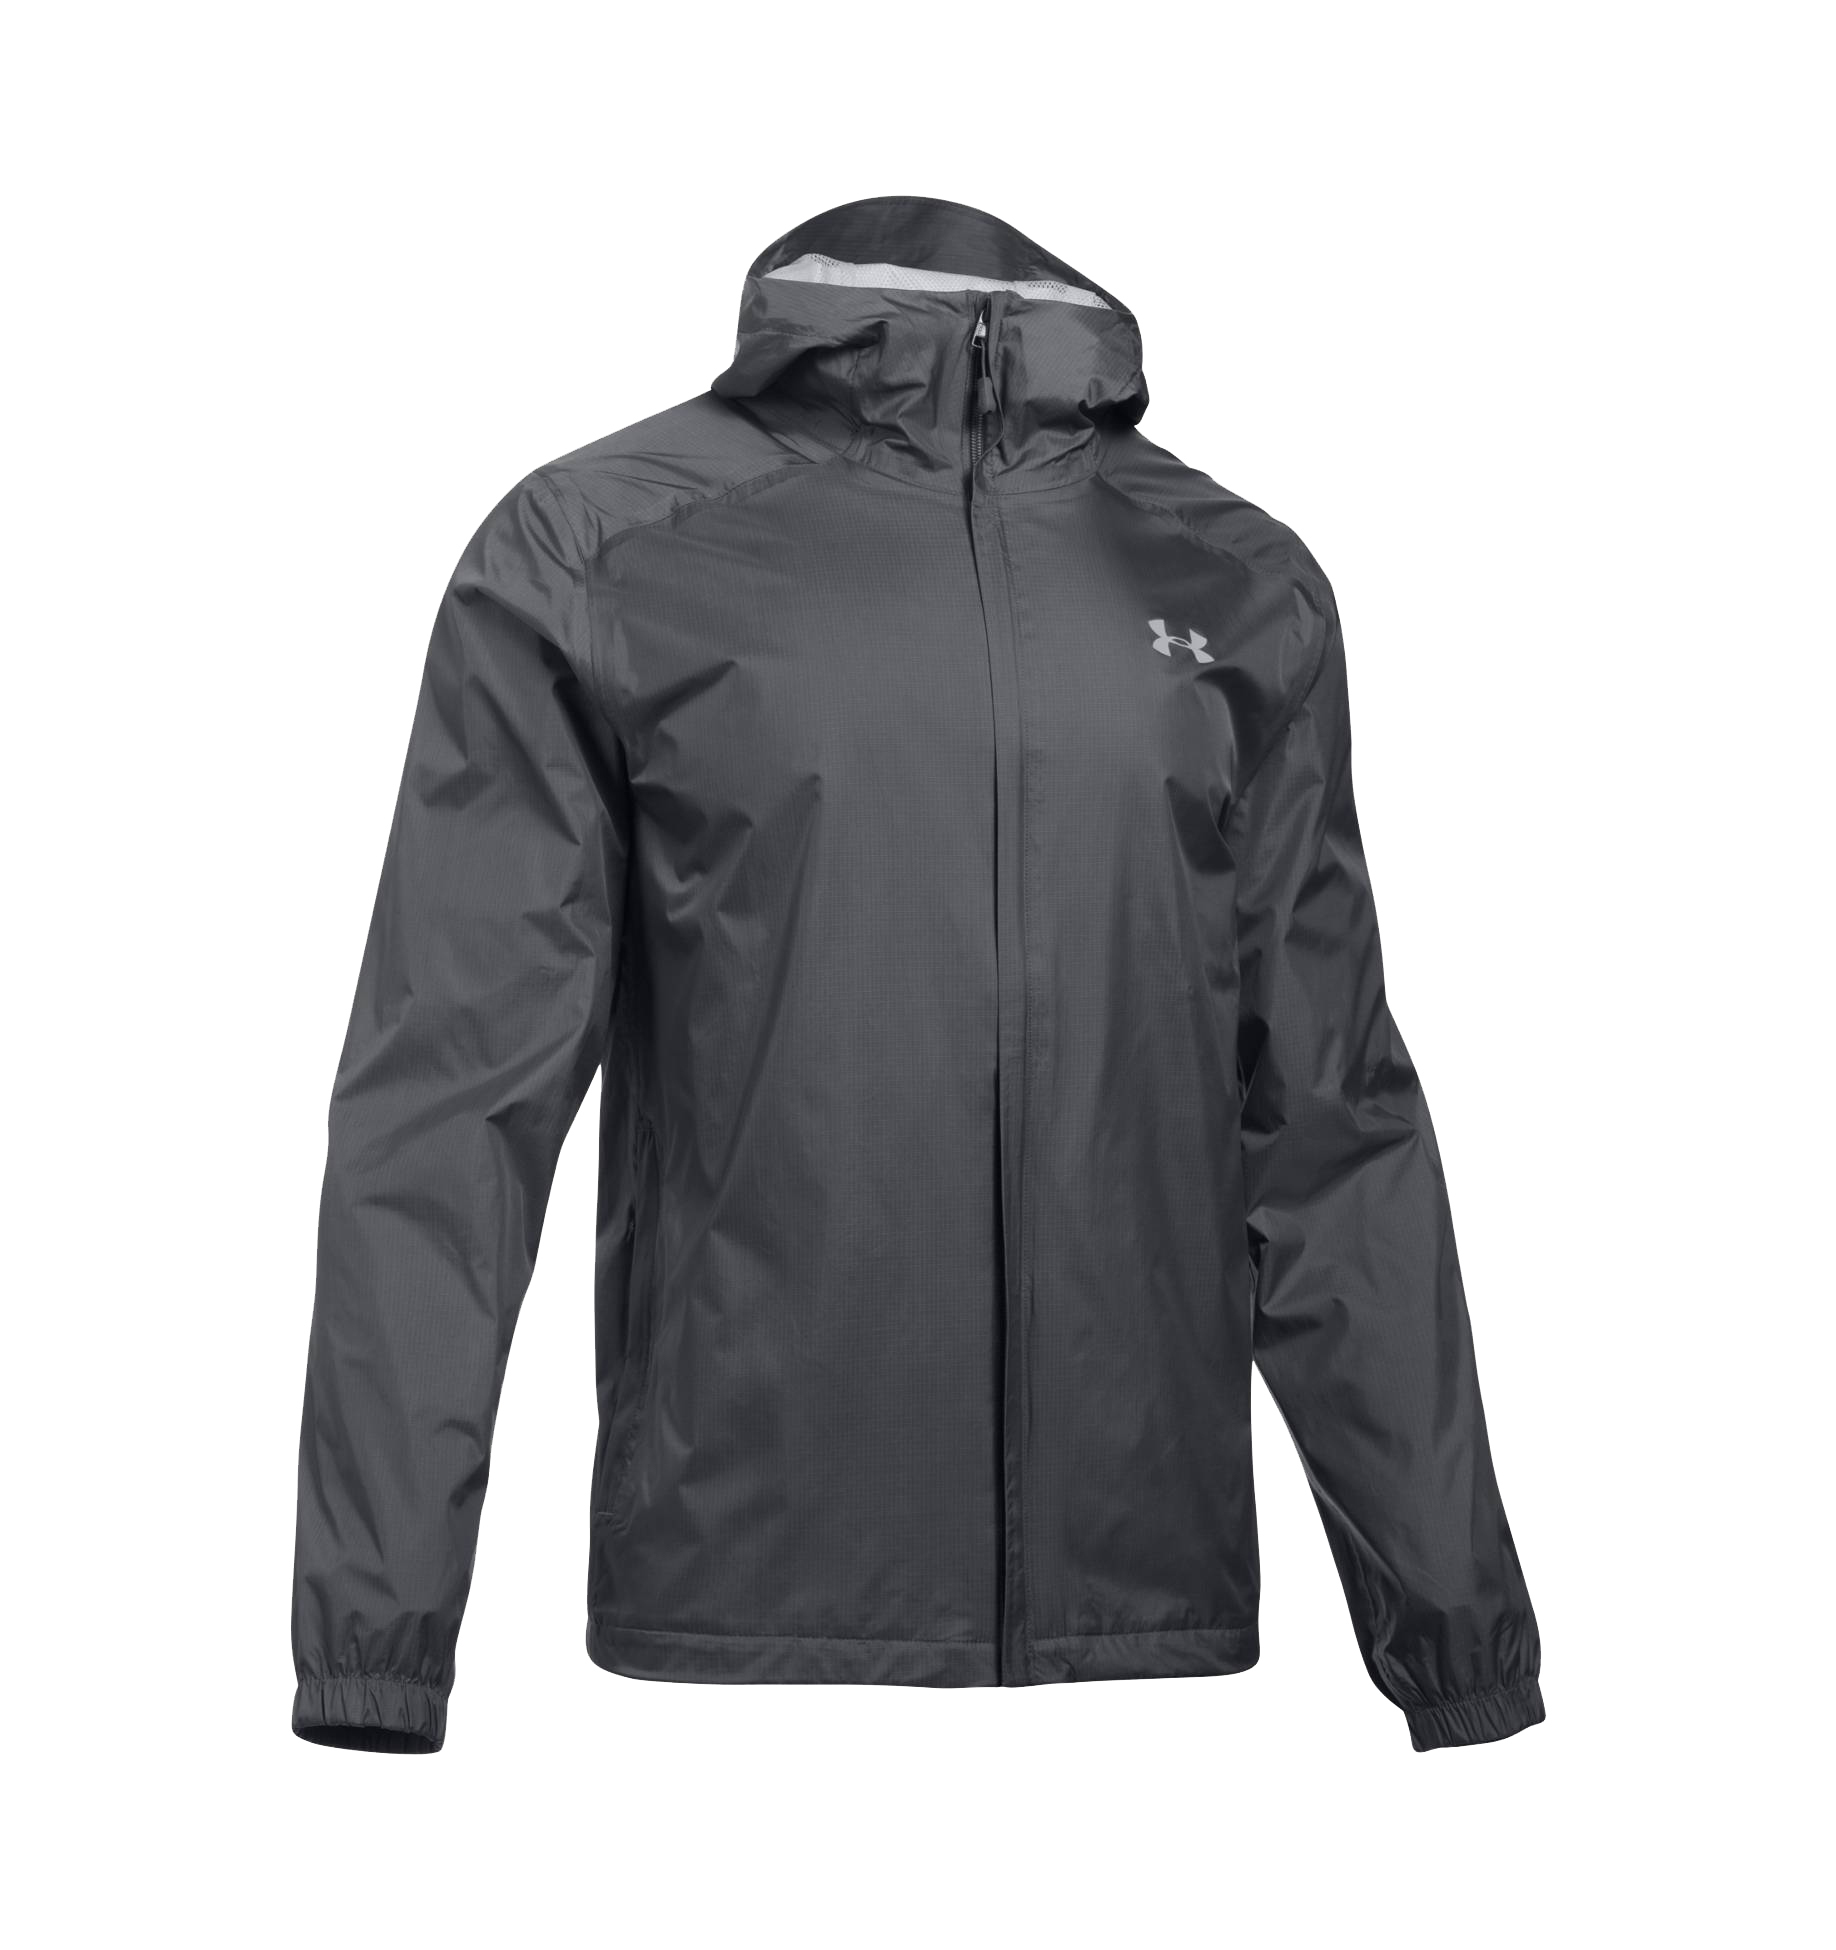 under armour jackets mens. under-armour-1292014-men-039-s-storm-bora- under armour jackets mens c